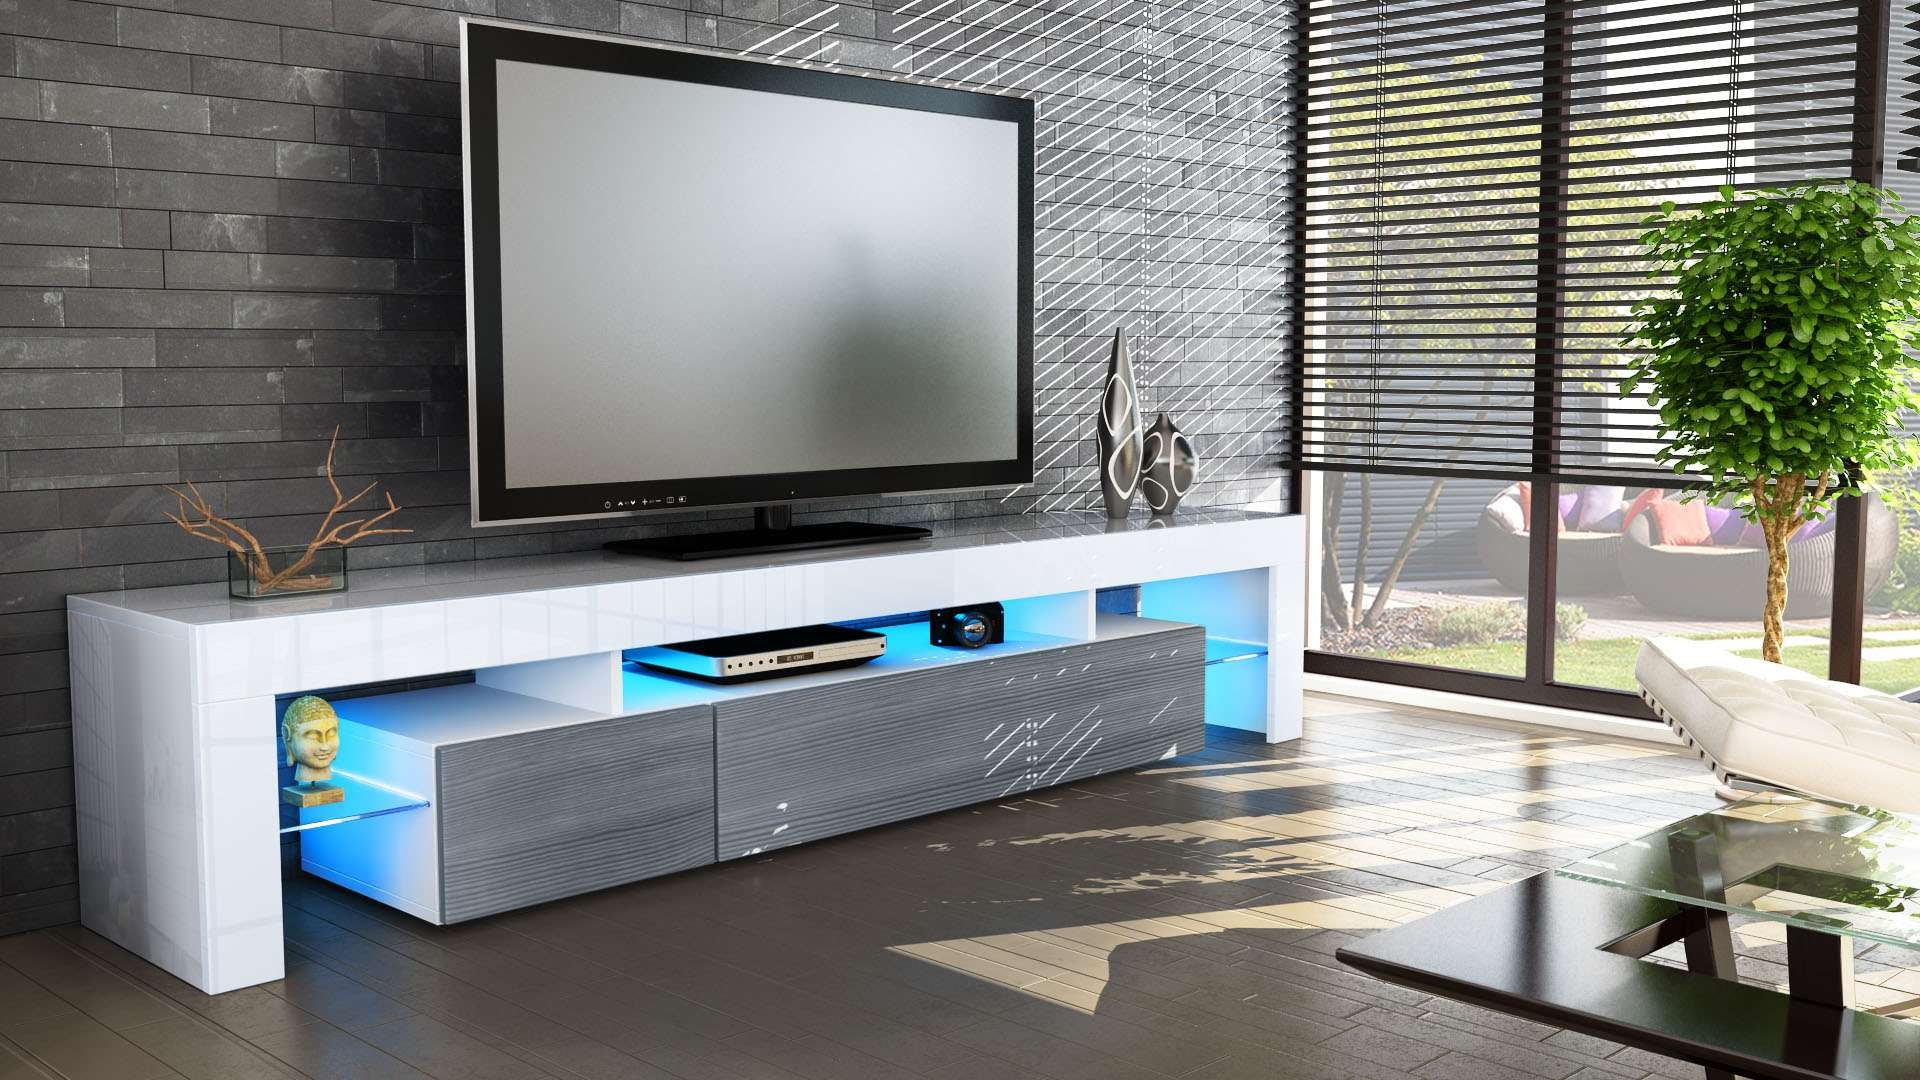 The Best Entertainment Center & Tv Stand For 60 Inch Tv Reviewed Within High Gloss White Tv Cabinets (View 13 of 20)